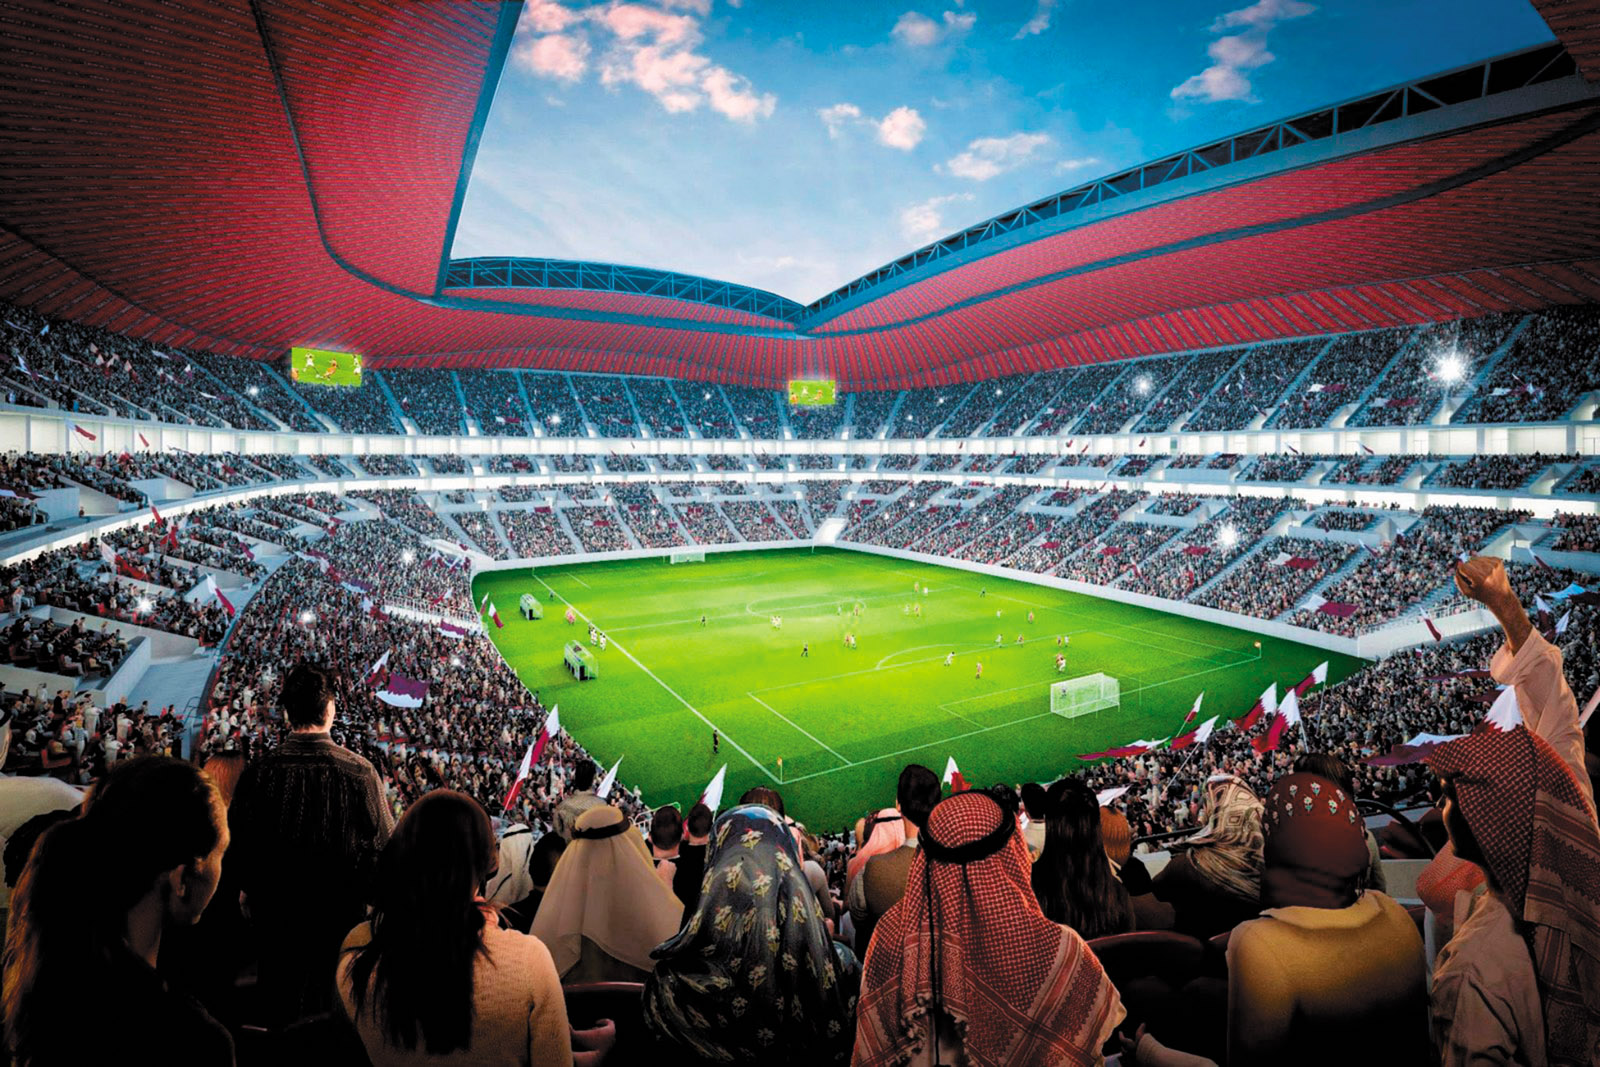 A rendering of Al Bayt Stadium, to be built in Al Khor, Qatar, for the 2022 World Cup